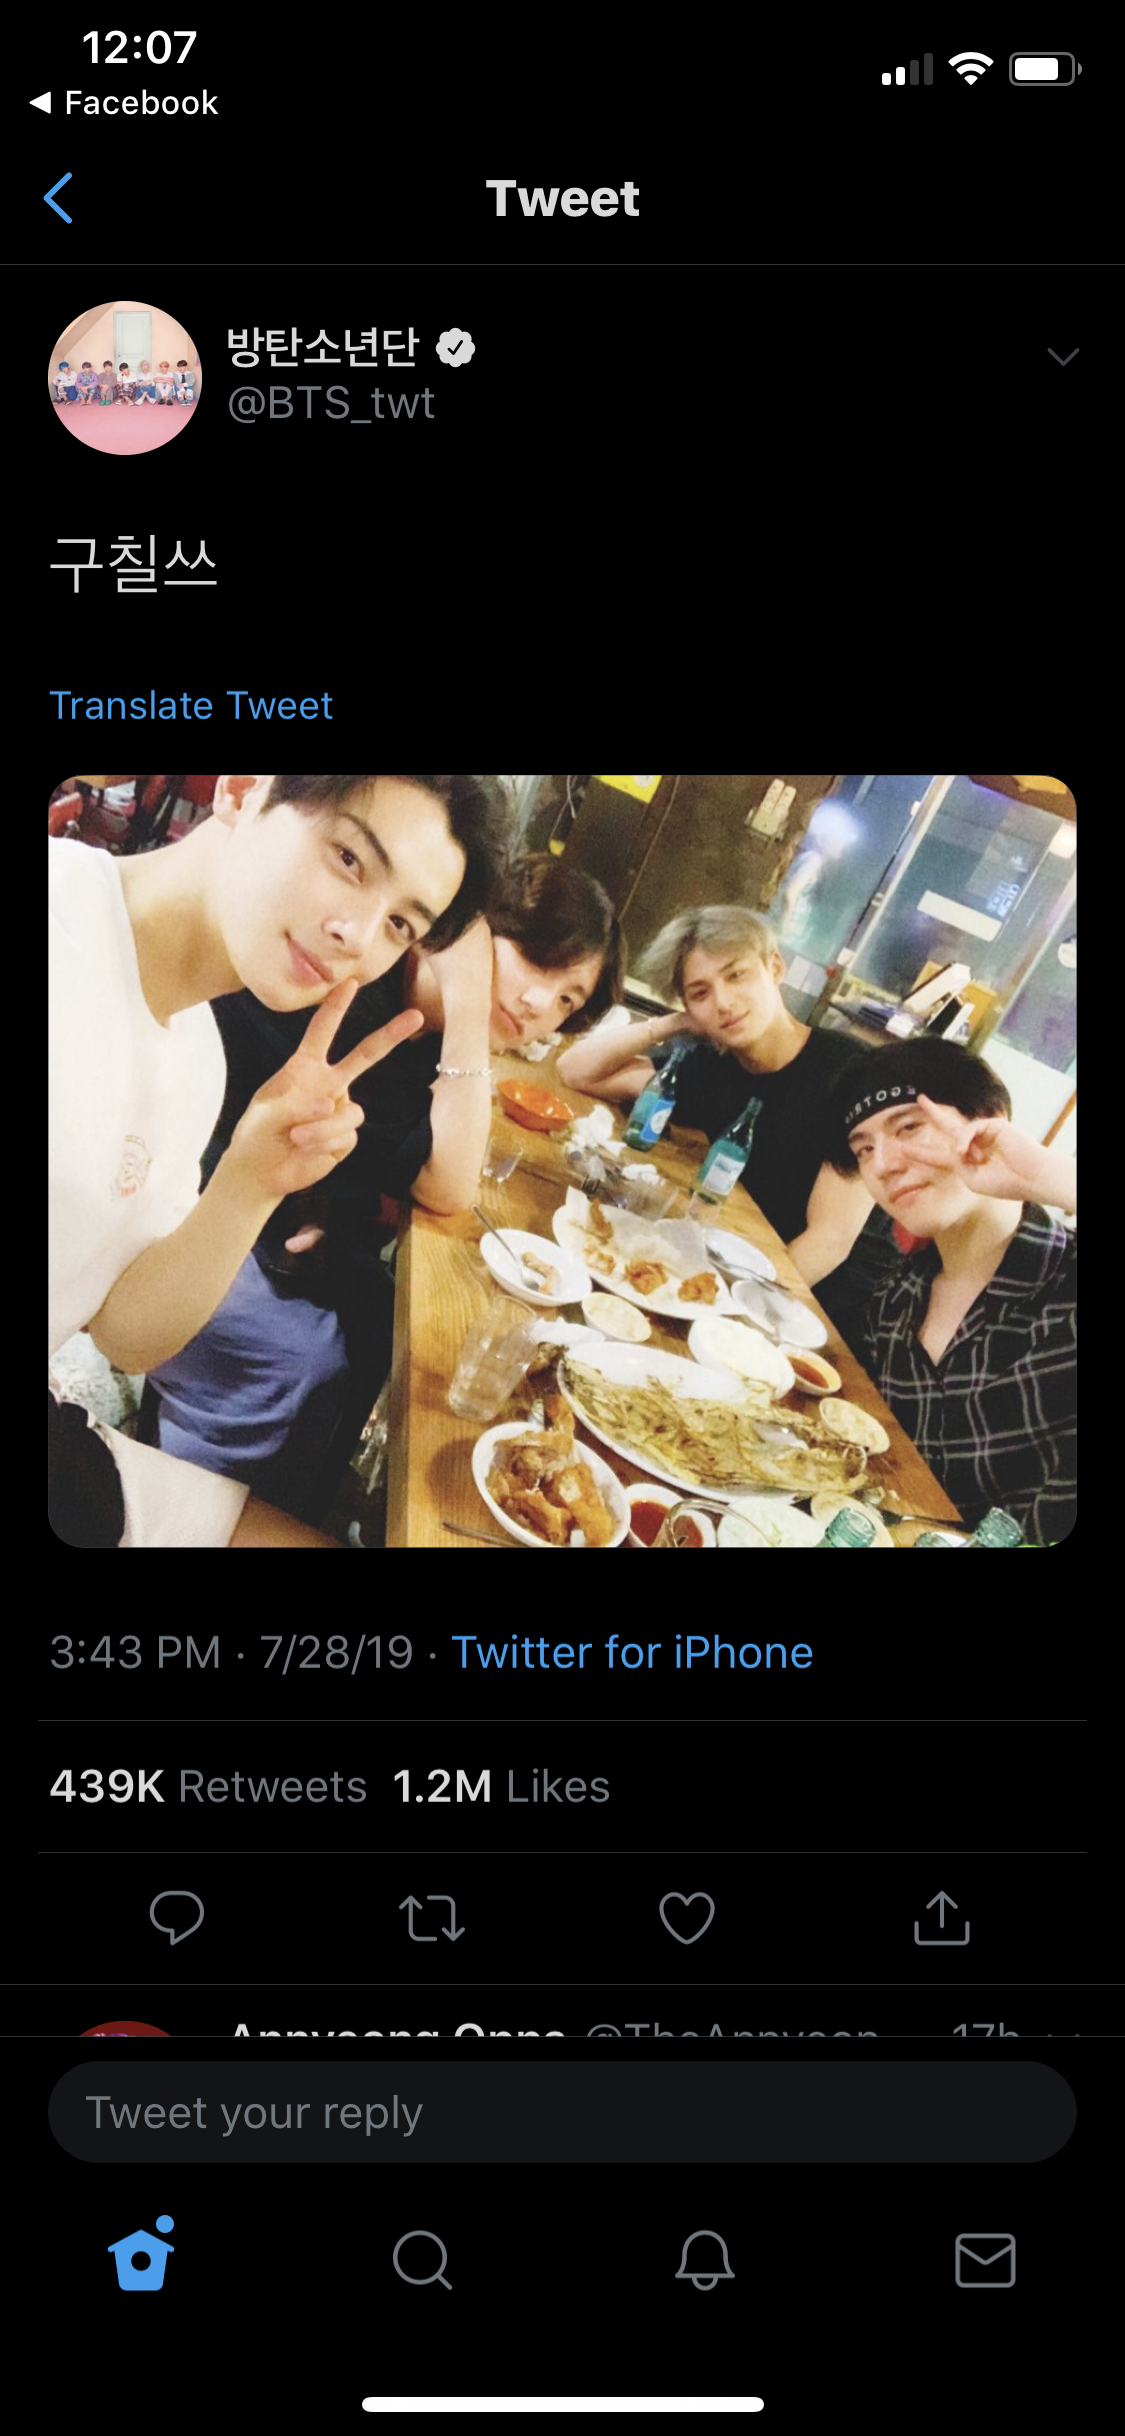 97 liners had another get together and Fans are Screaming -